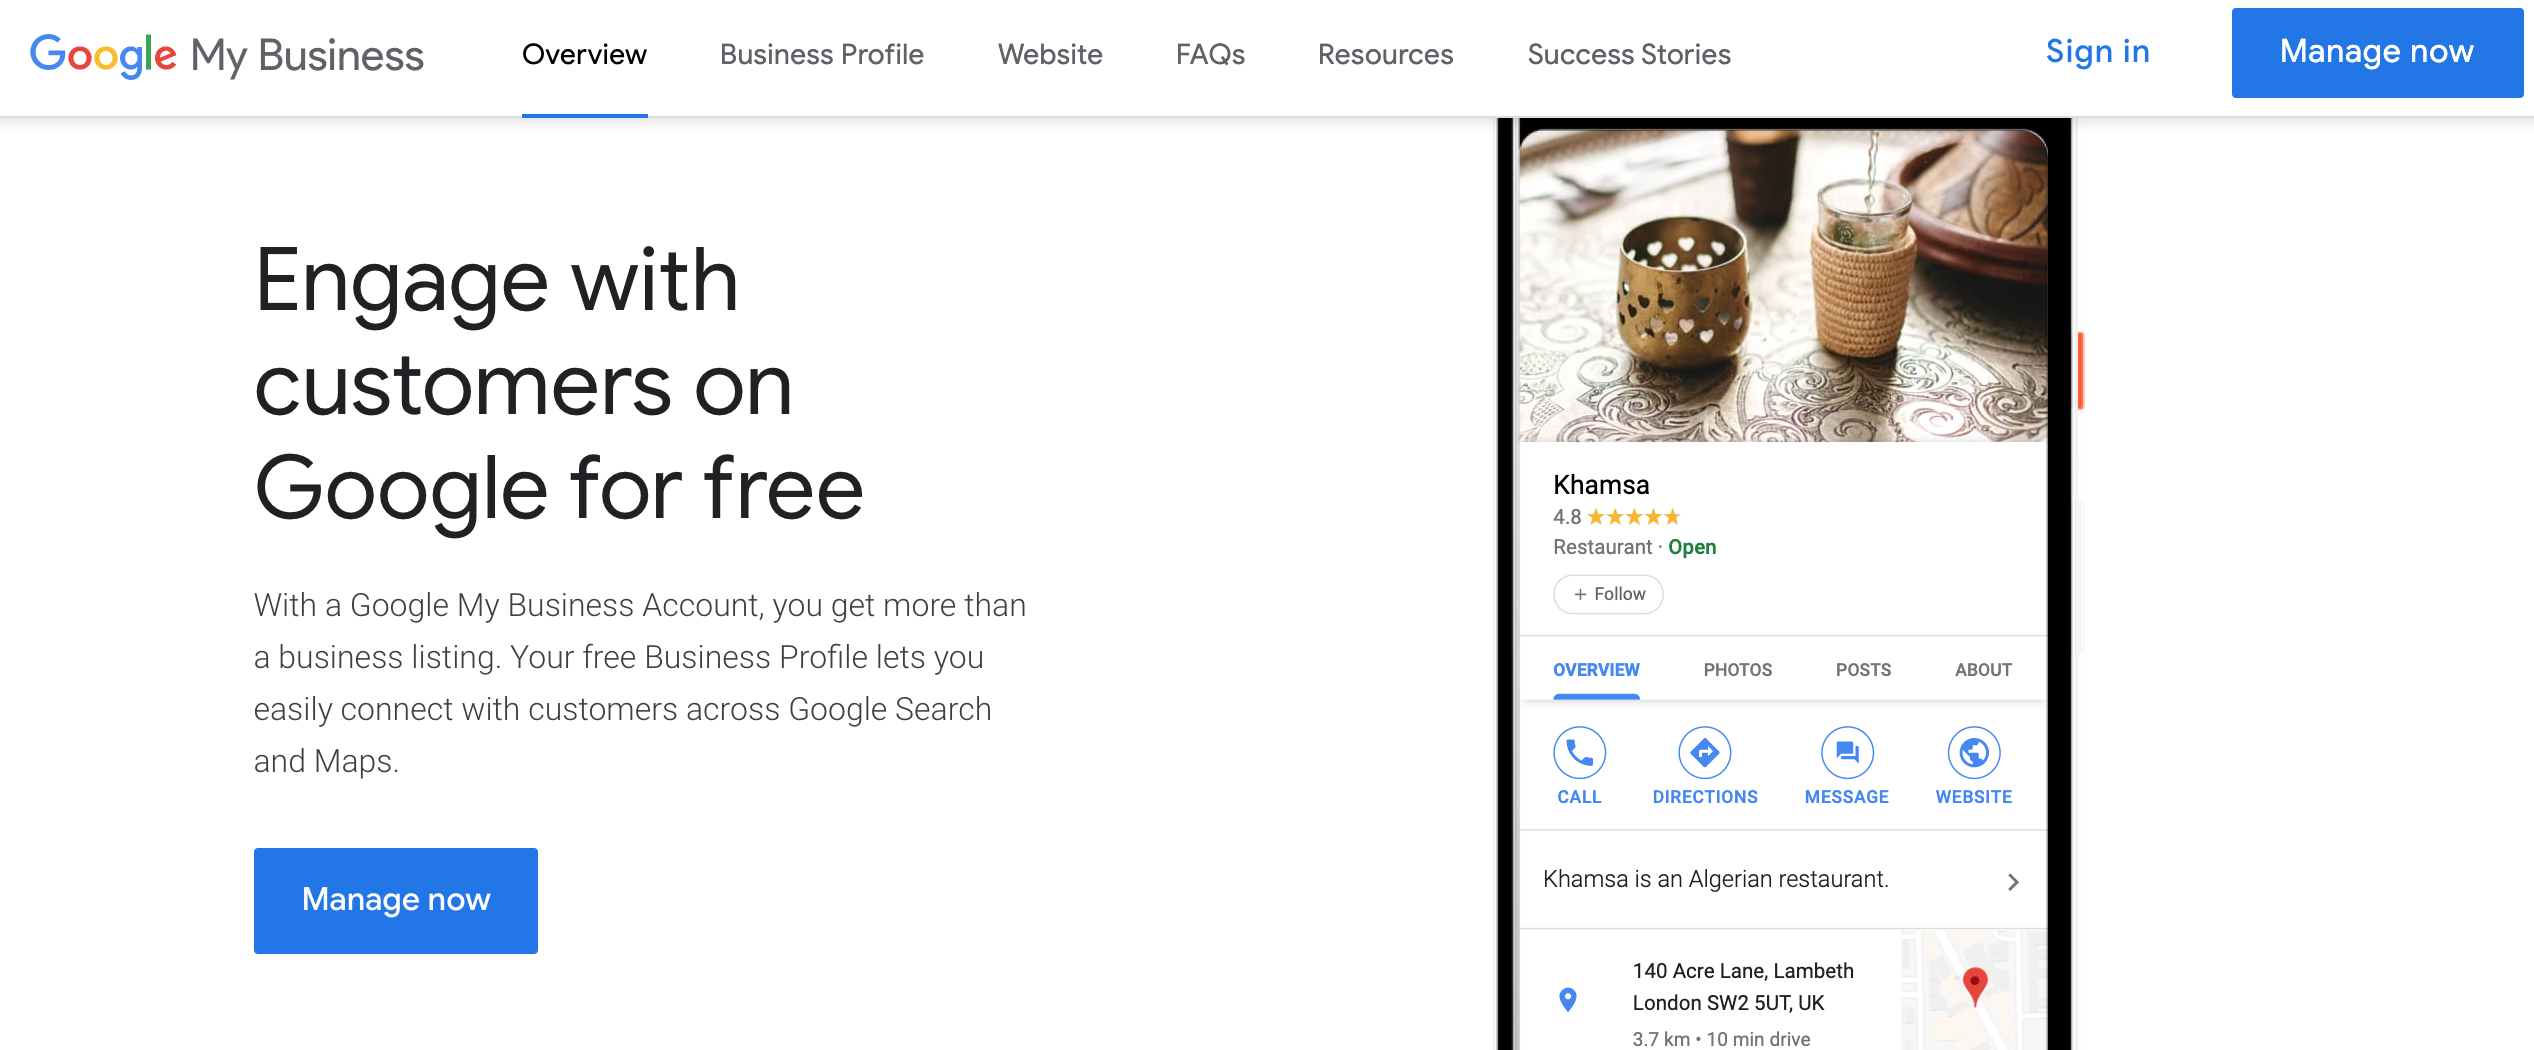 Google My Business Home Page